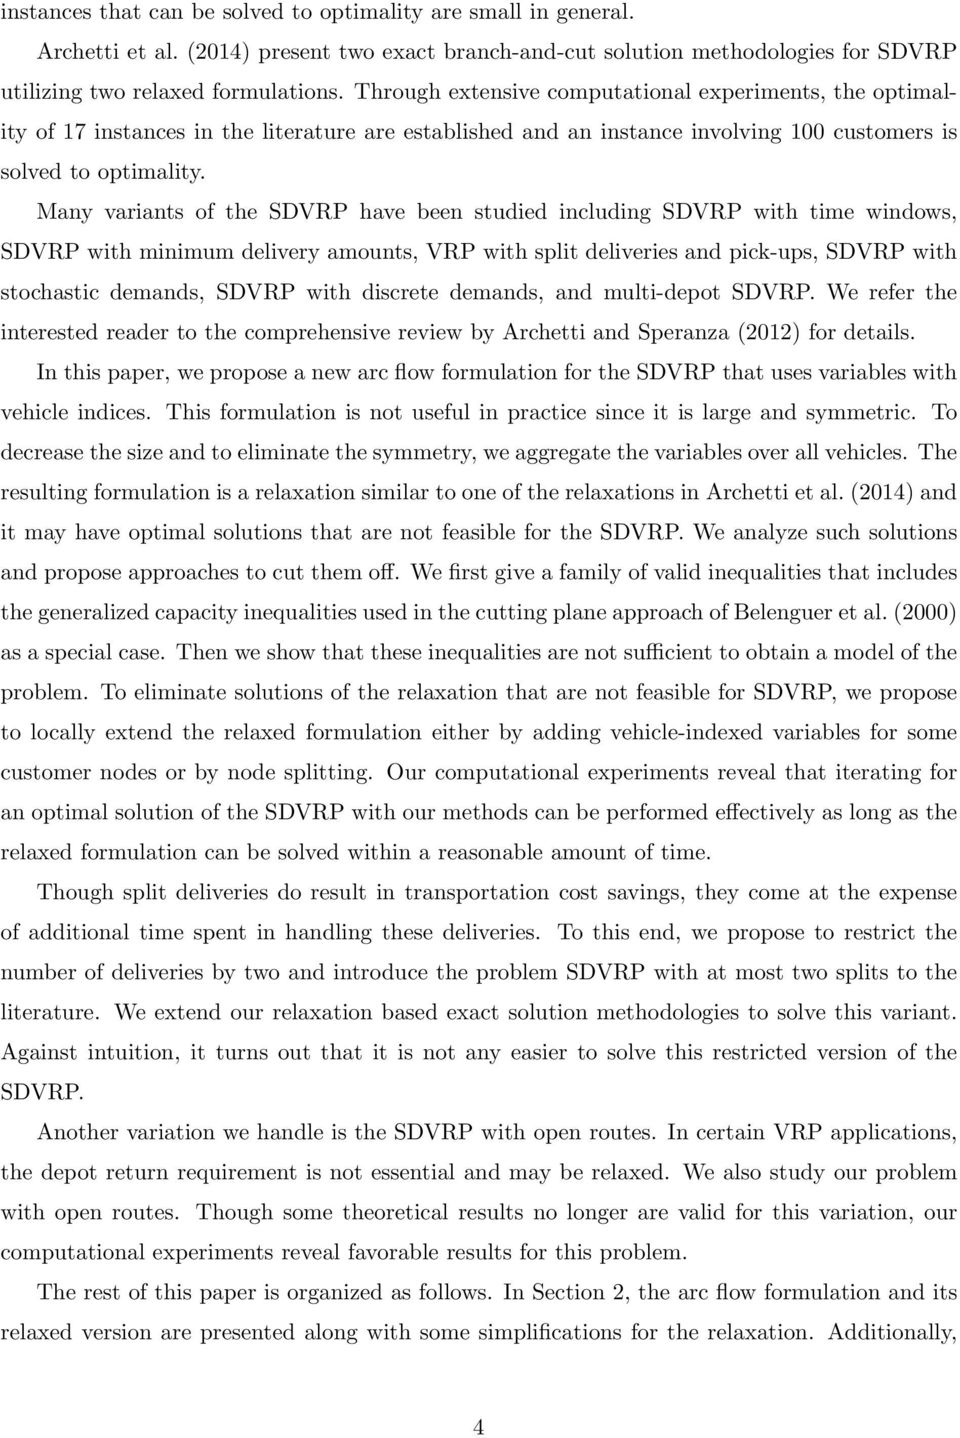 Many variants of the SDVRP have been studied including SDVRP with time windows, SDVRP with minimum delivery amounts, VRP with split deliveries and pick-ups, SDVRP with stochastic demands, SDVRP with